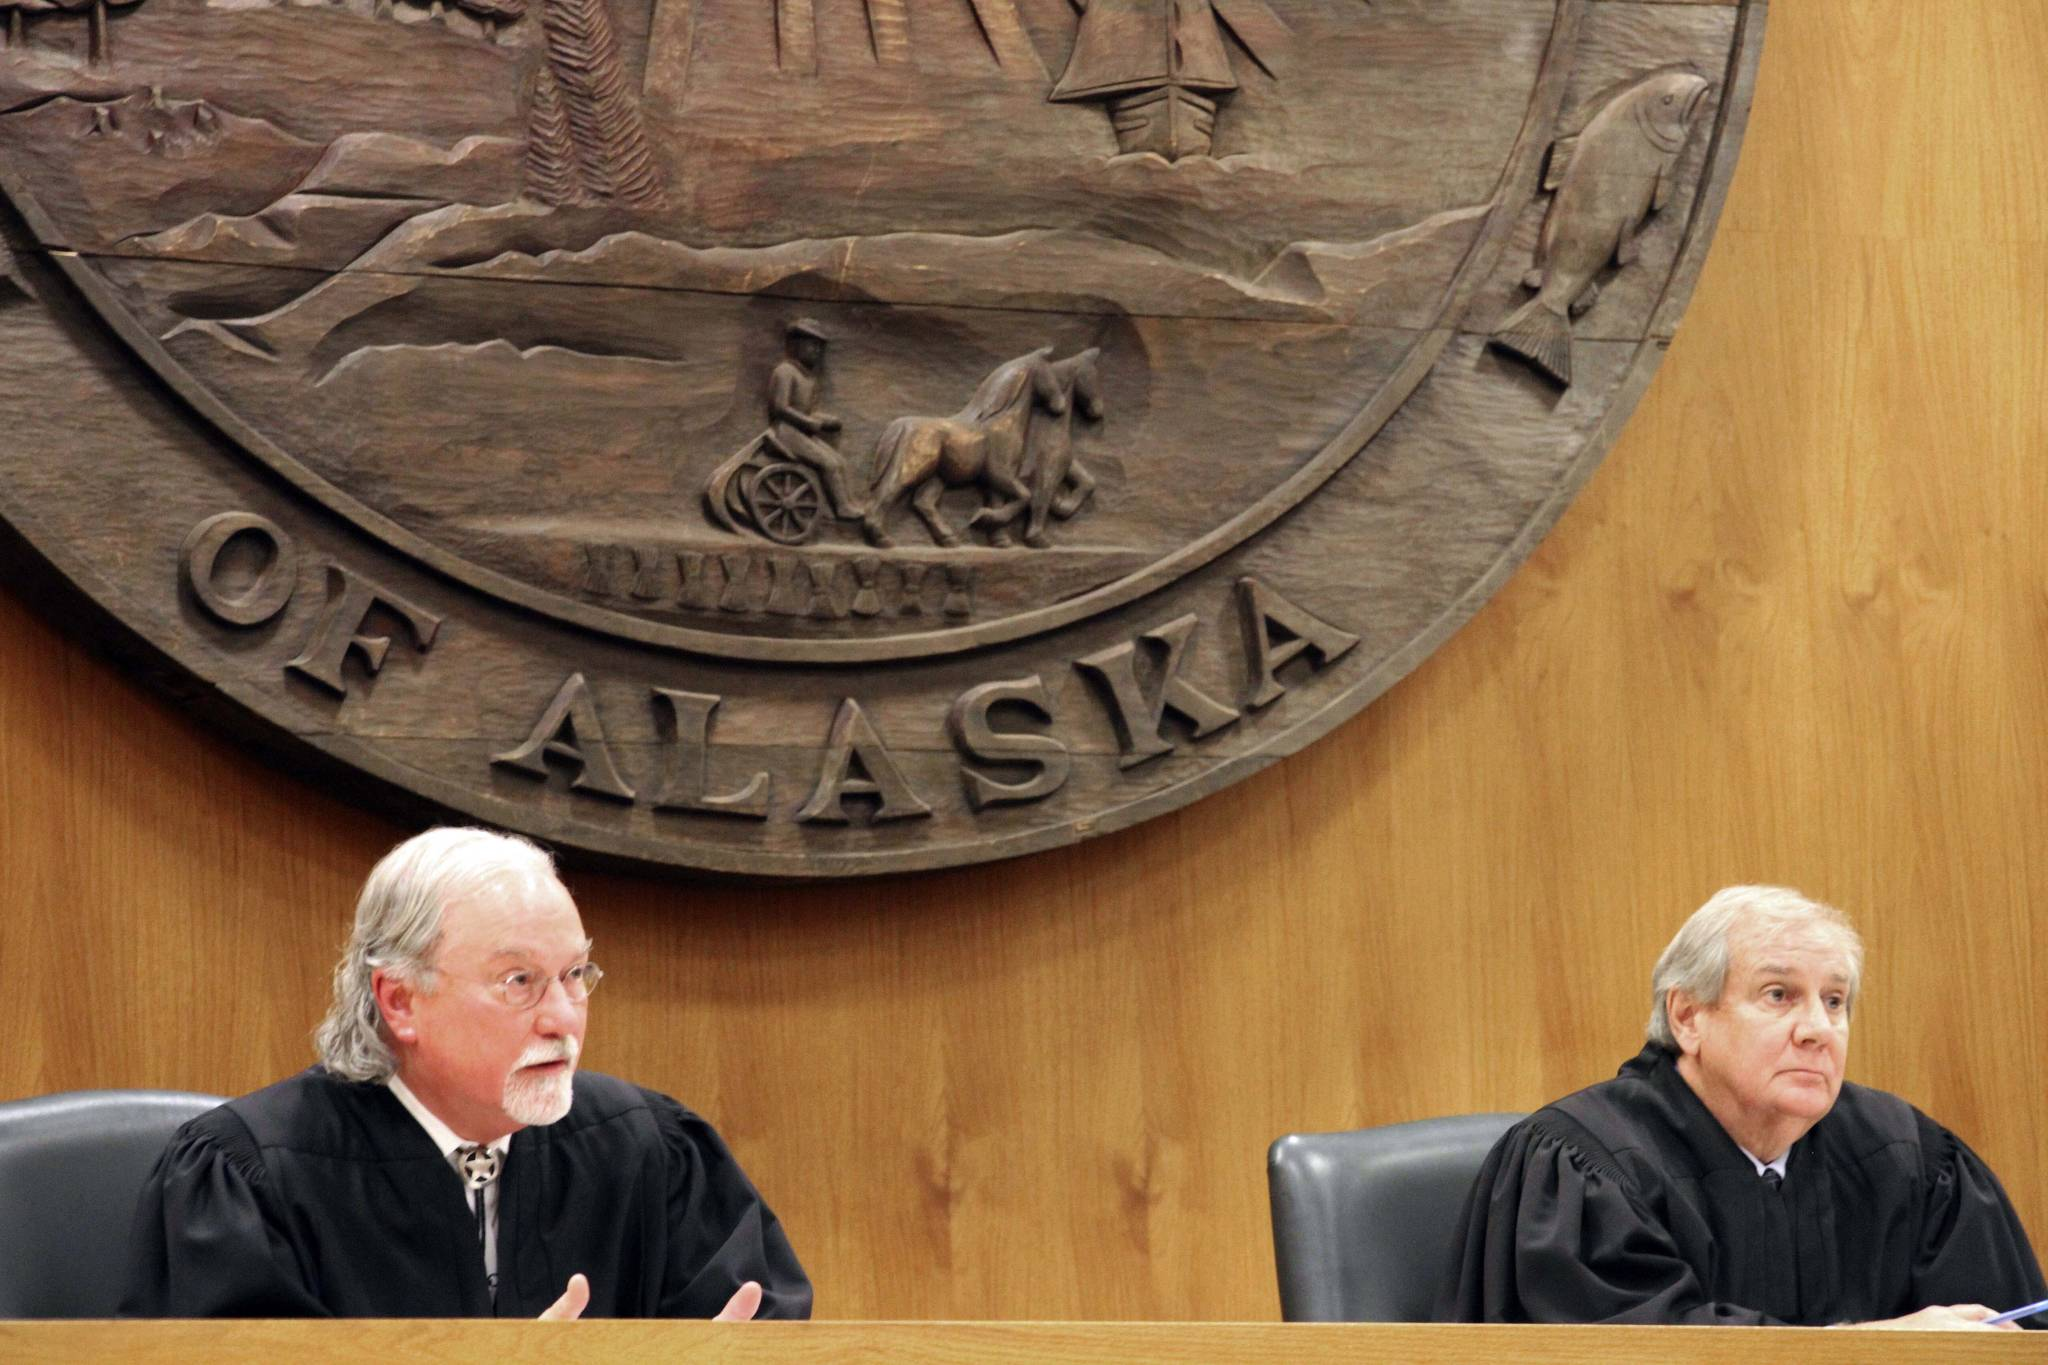 Alaska Supreme Court Justices Craig Stowers, left, and Daniel Winfree listen to arguments in a lawsuit that claims state policy on fossil fuels is harming the constitutional right of young Alaskans to a safe climate Wednesday in Anchorage. Sixteen Alaska youths in 2017 sued the state, claiming that human-caused greenhouse gas emission leading to climate change is creating long-term, dangerous health effects. They lost in Superior Court, but appealed to Alaska's highest court. (AP Photo | Mark Thiessen)